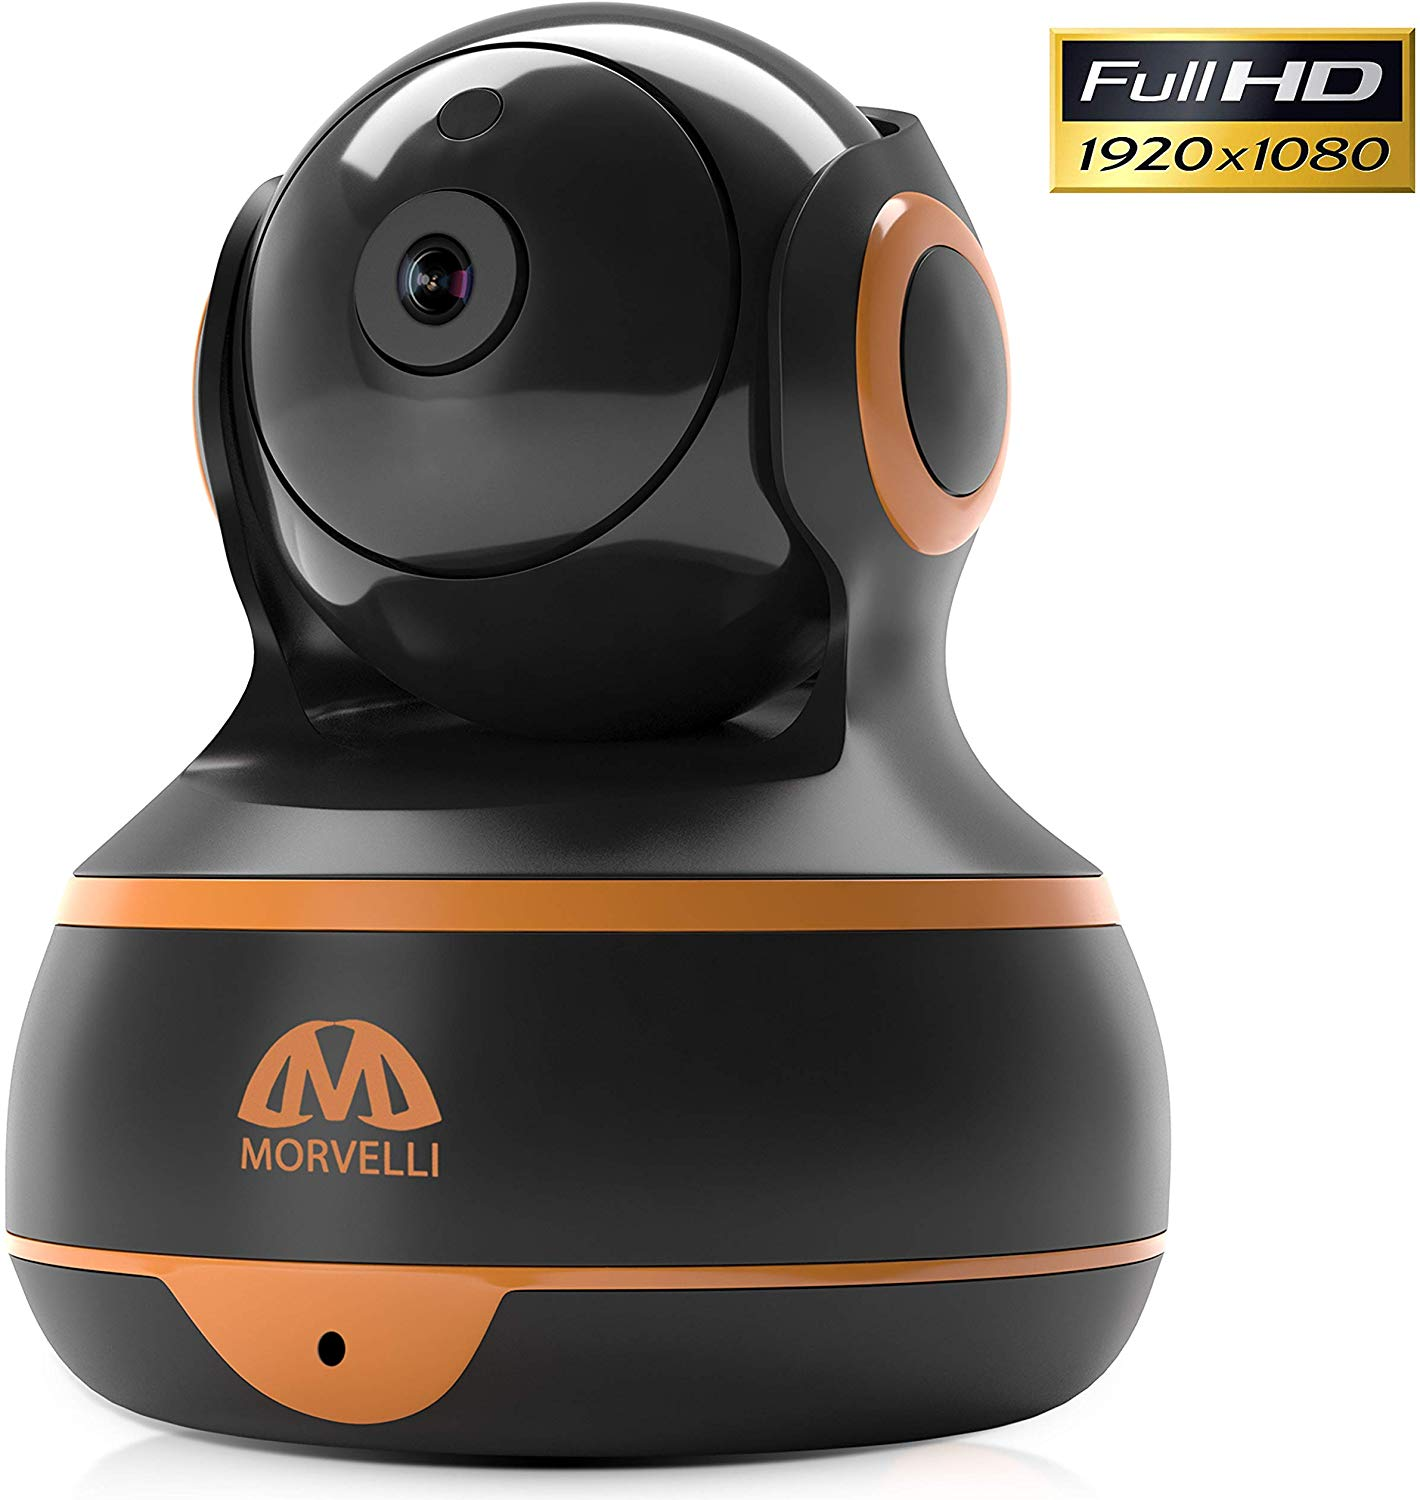 [New 2020] FullHD 1080p WiFi Home Security Camera